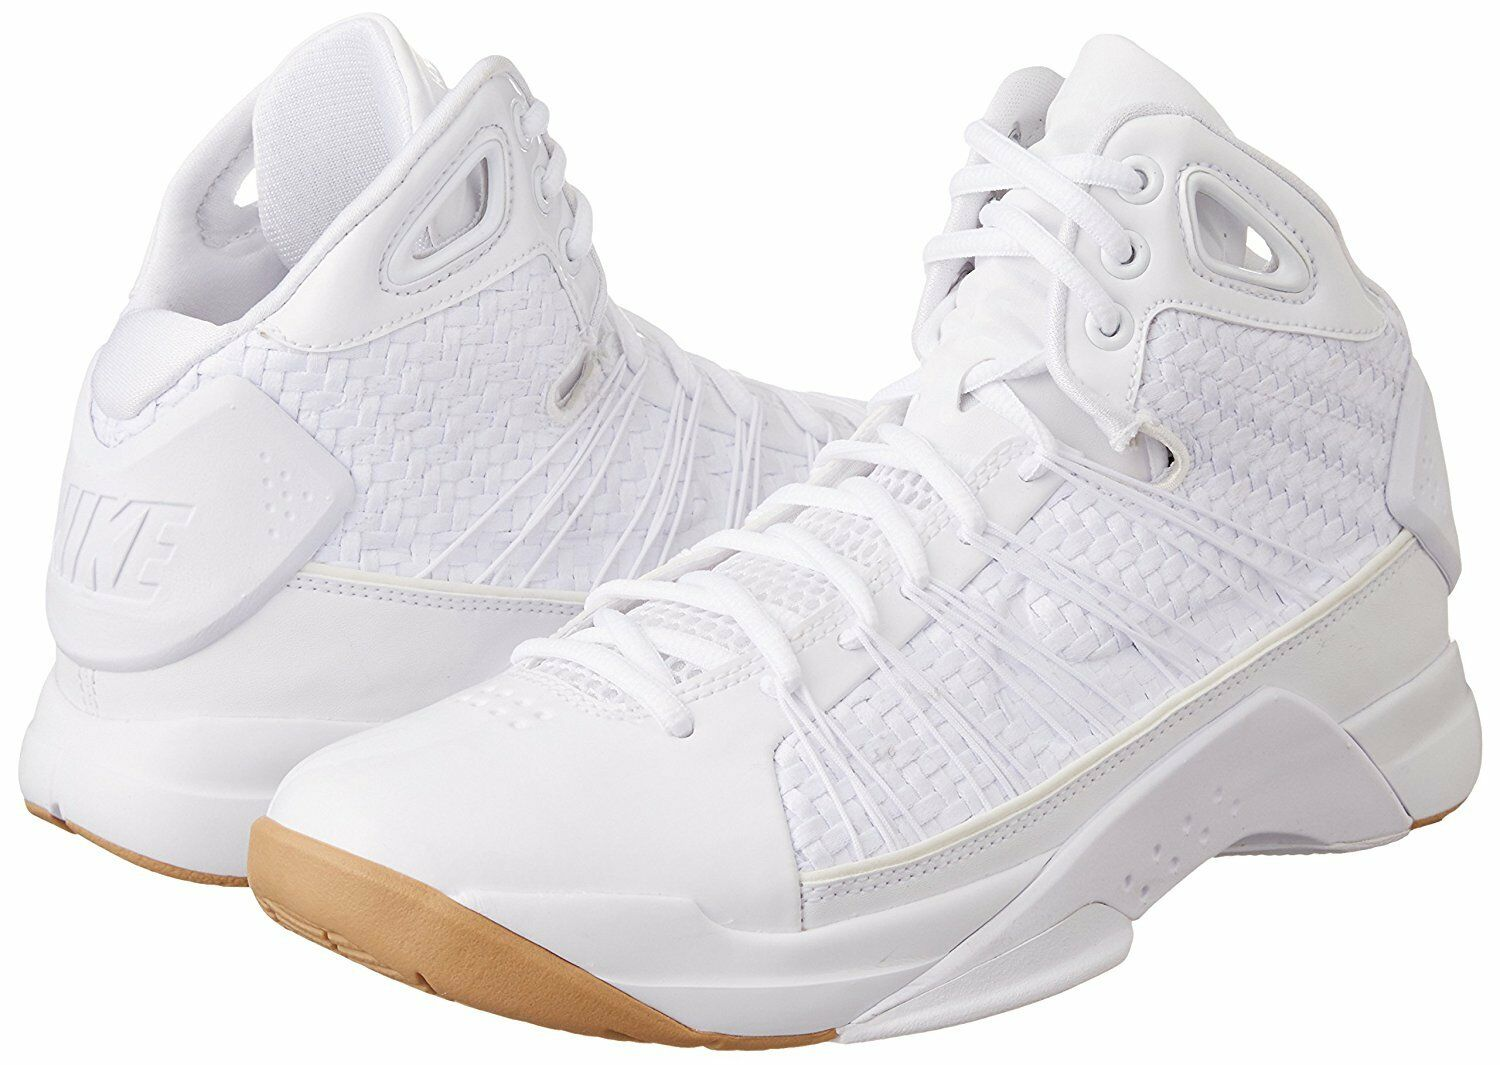 NIKE HYPERDUNK LUX WHITE PATENT GUM LIGHT BROWN 818137 100 NEW 170 7.5-15